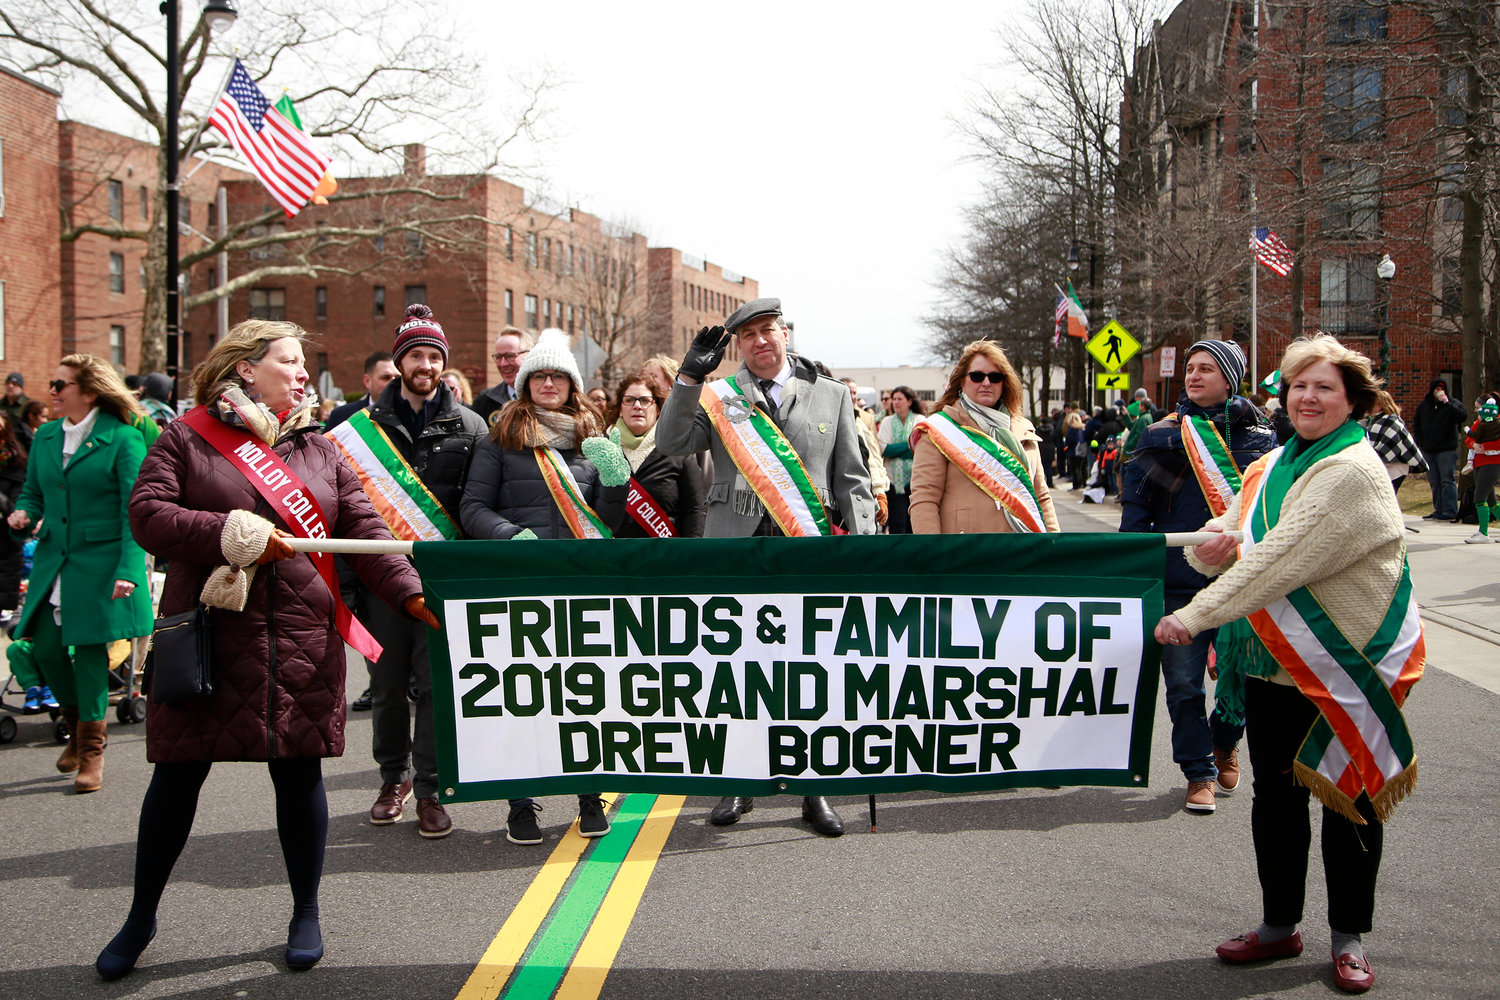 Drew Bogner served as grand marshal of Rockville Centre's St. Patrick's Parade on March 23.